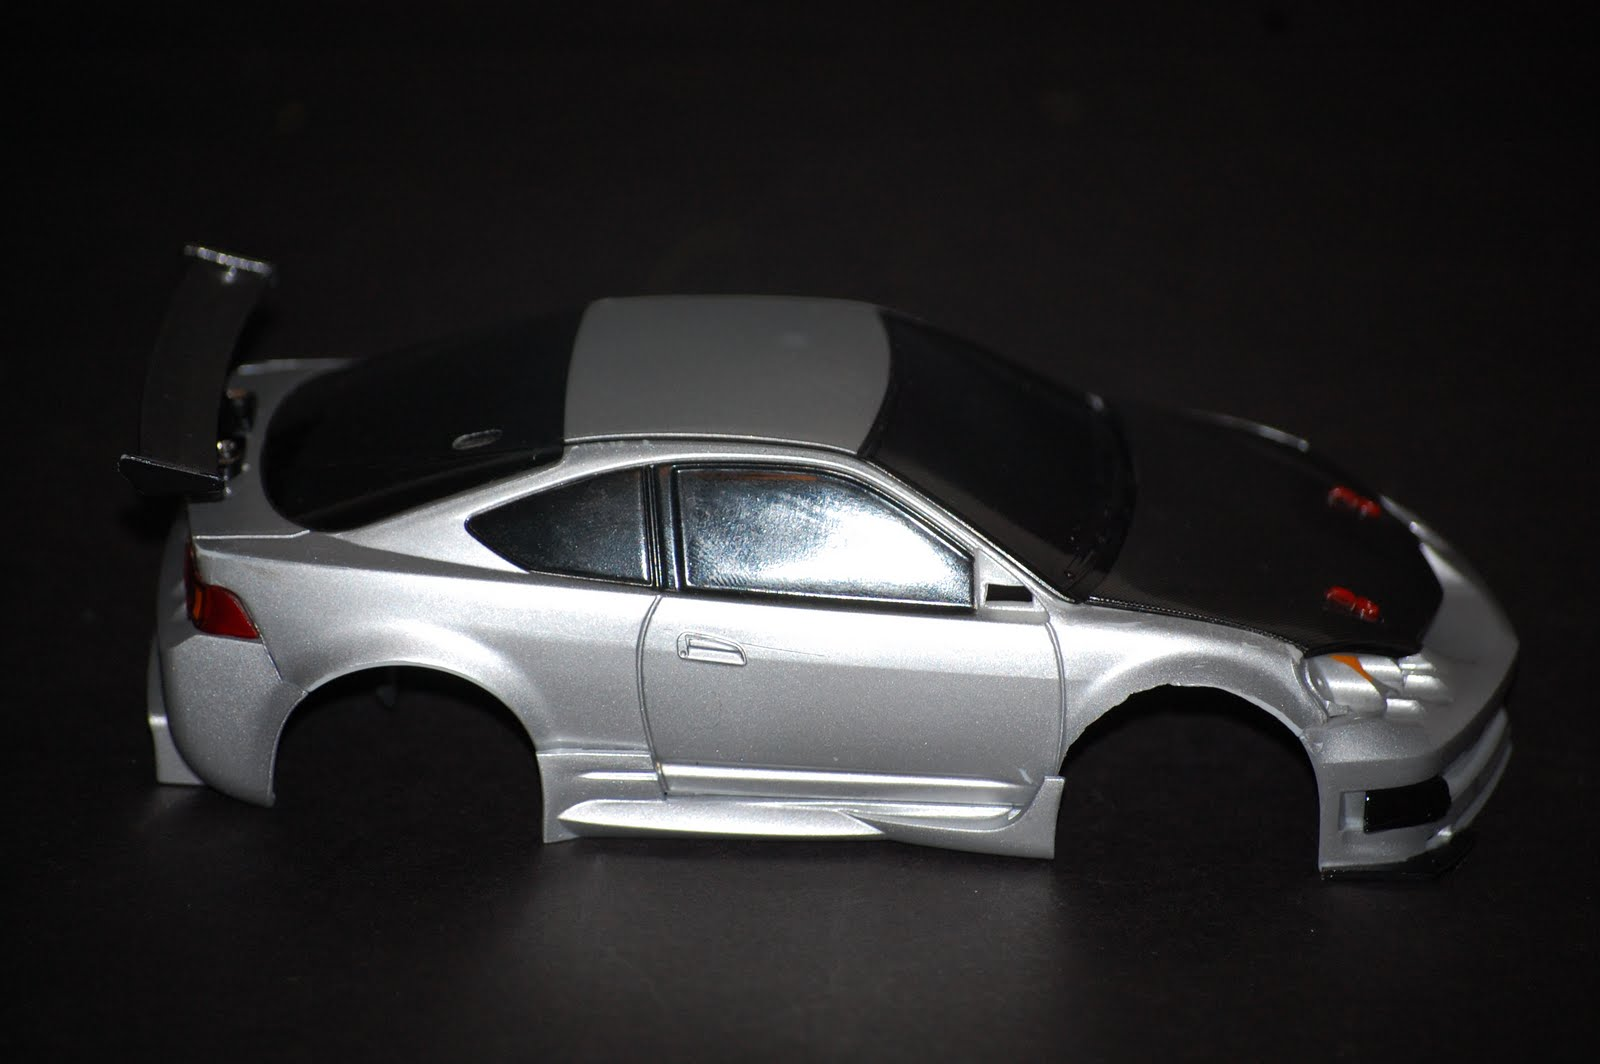 Southern Comfort Rc Garage: Acura RSX-Silver/black